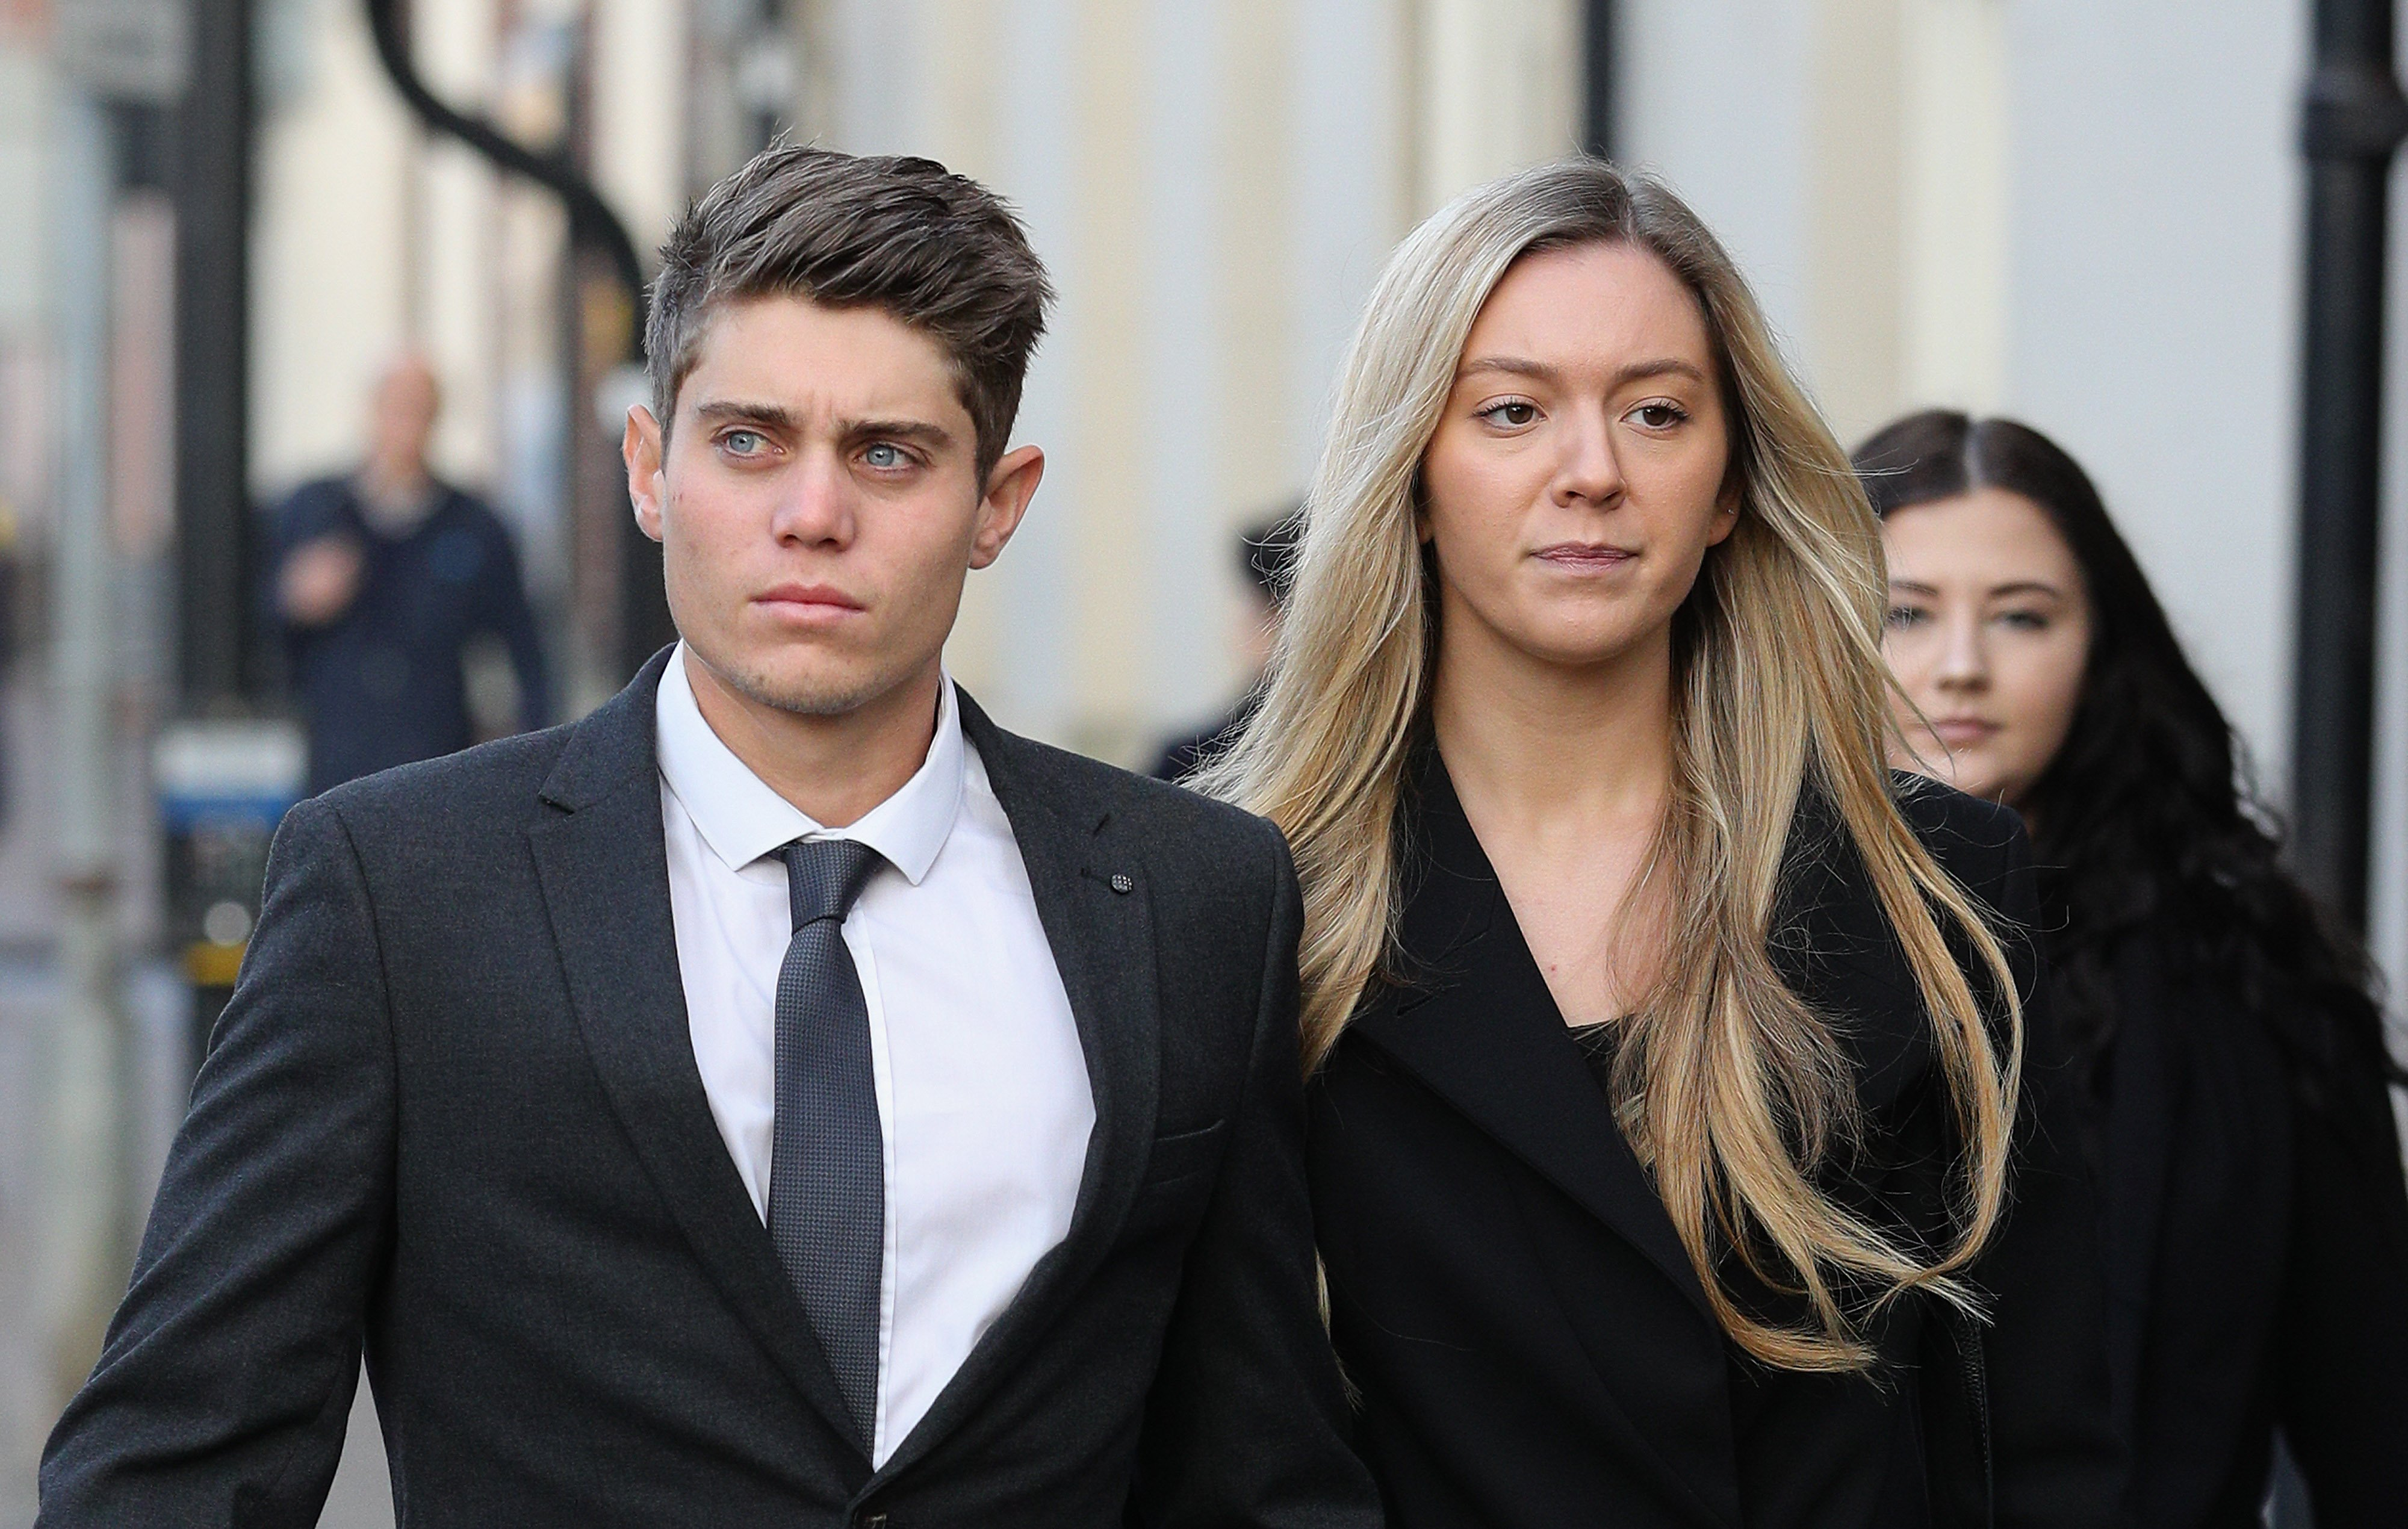 England cricket teams given sexual consent education in the aftermath of Alex Hepburn rape conviction